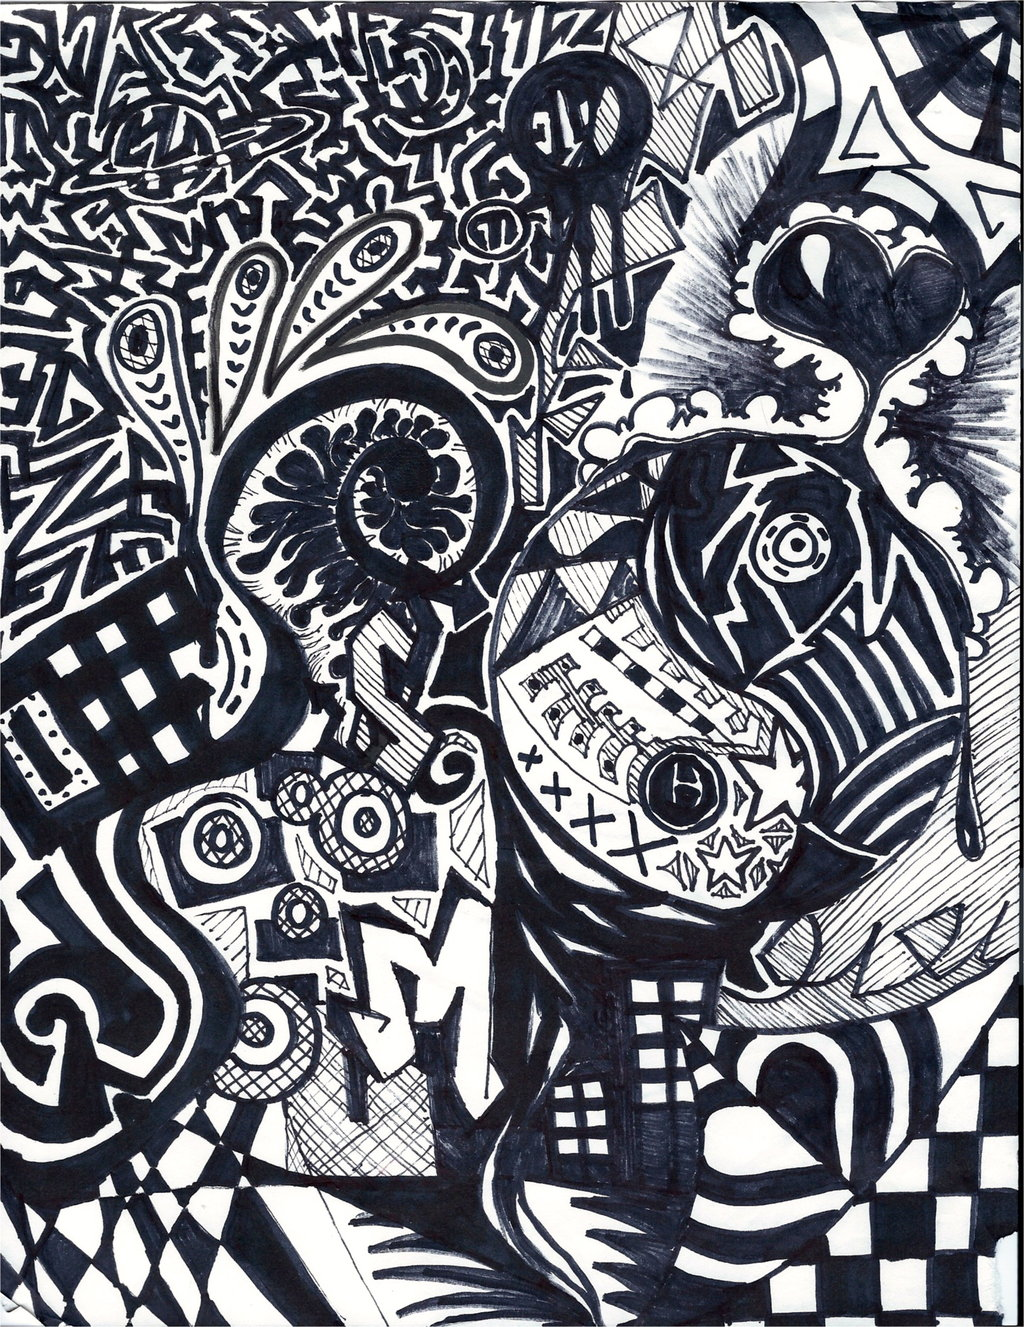 14 Sharpie Abstract Designs Images Abstract Sharpie Art Drawing Abstract Sharpie Art Drawing